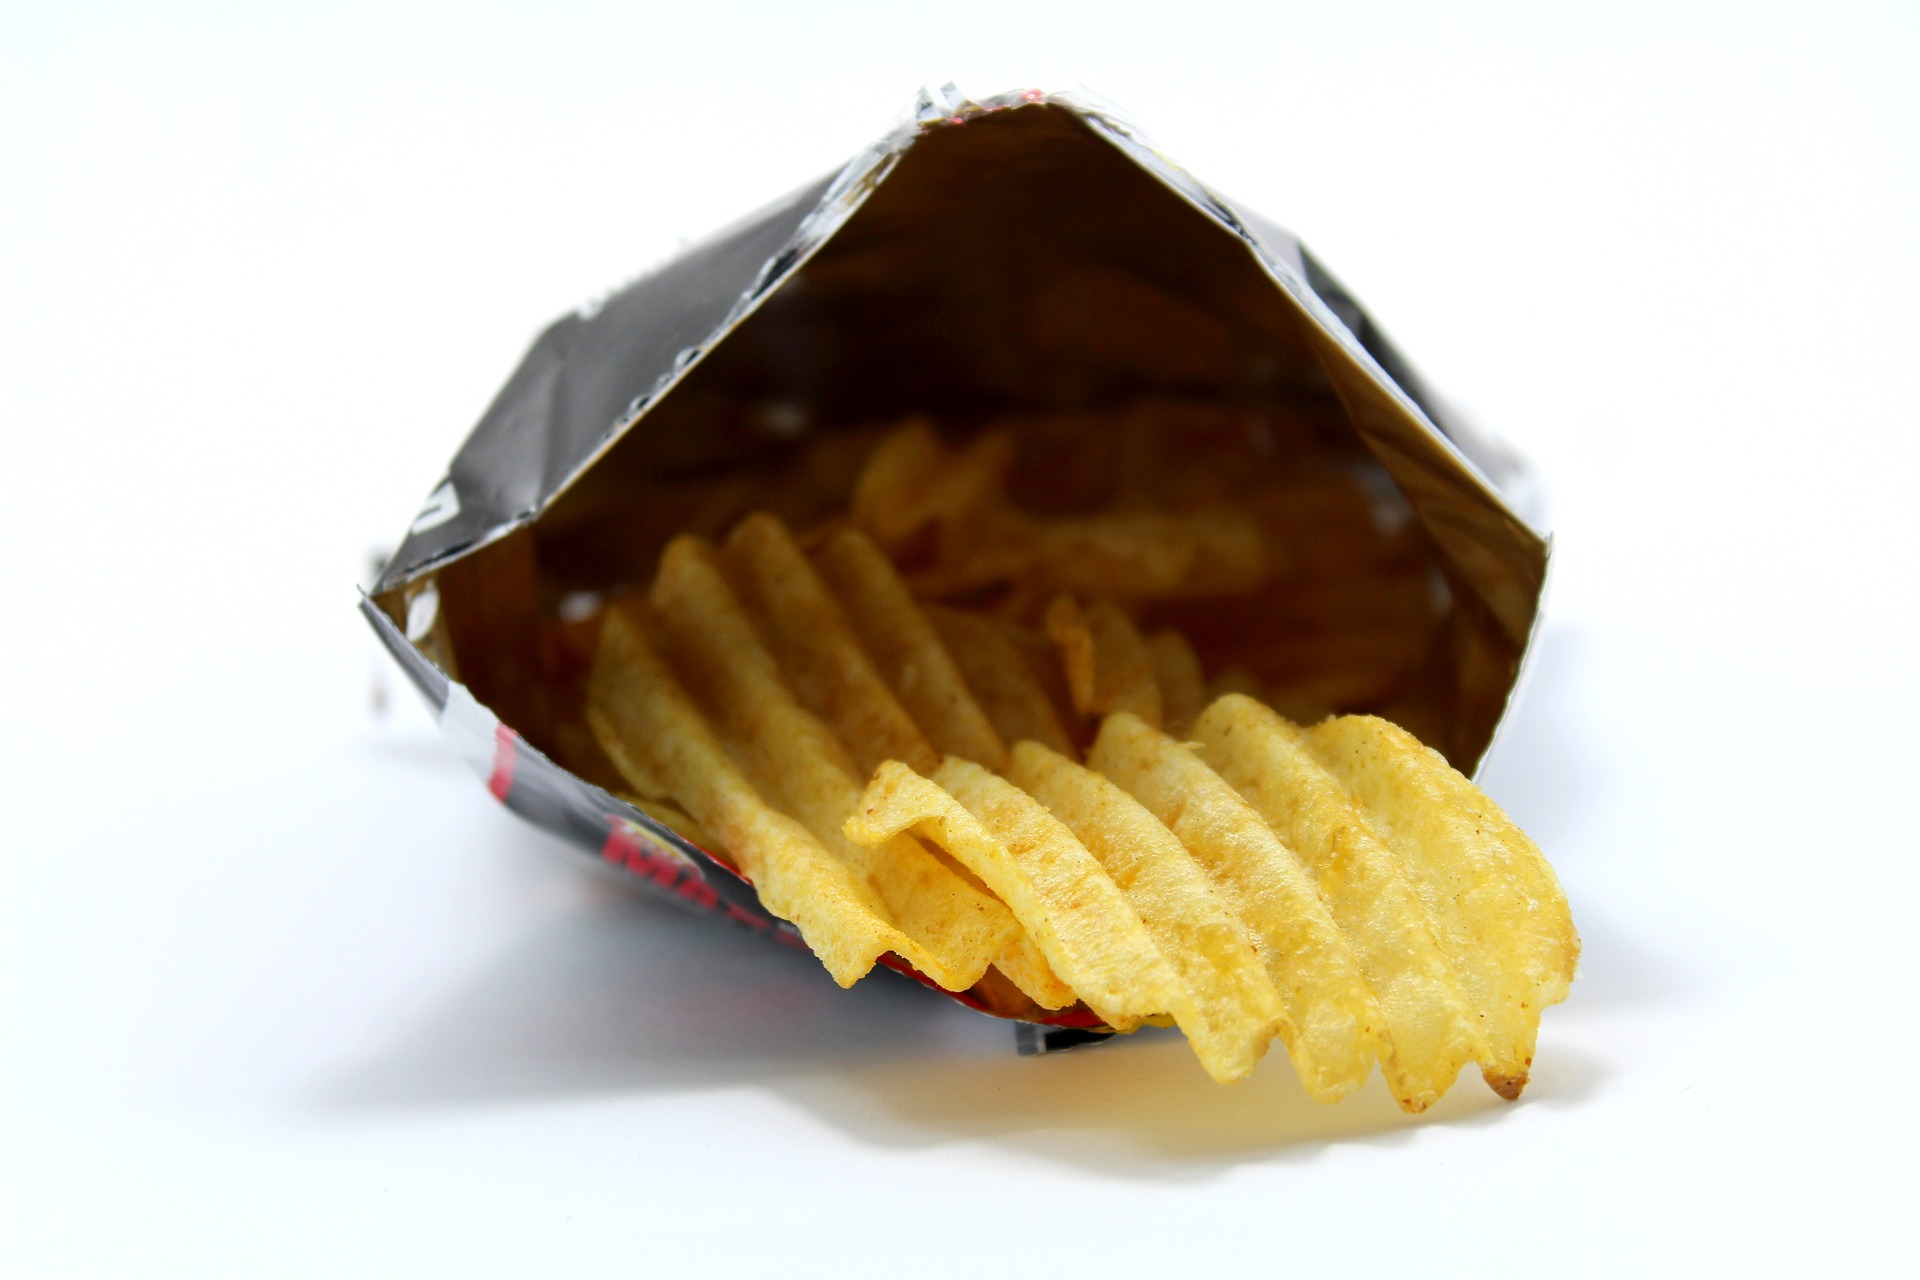 An open bag of crinkle-cut crisps